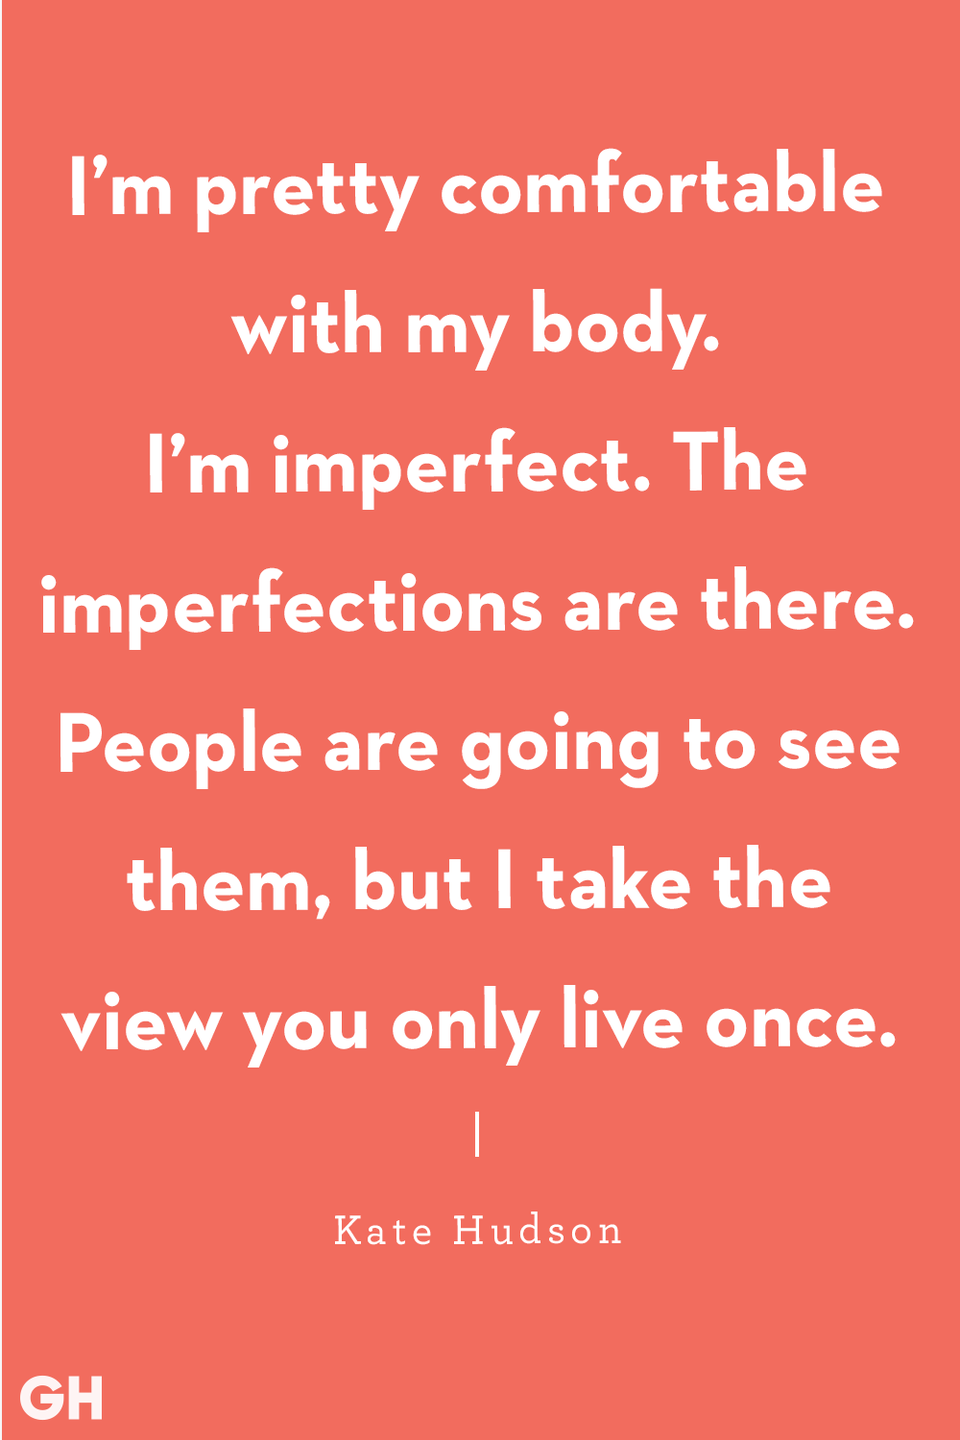 "<p>""I'm pretty comfortable with my body. I'm imperfect. The imperfections are there. People are going to see them, but I take the view you only live once."" </p>"